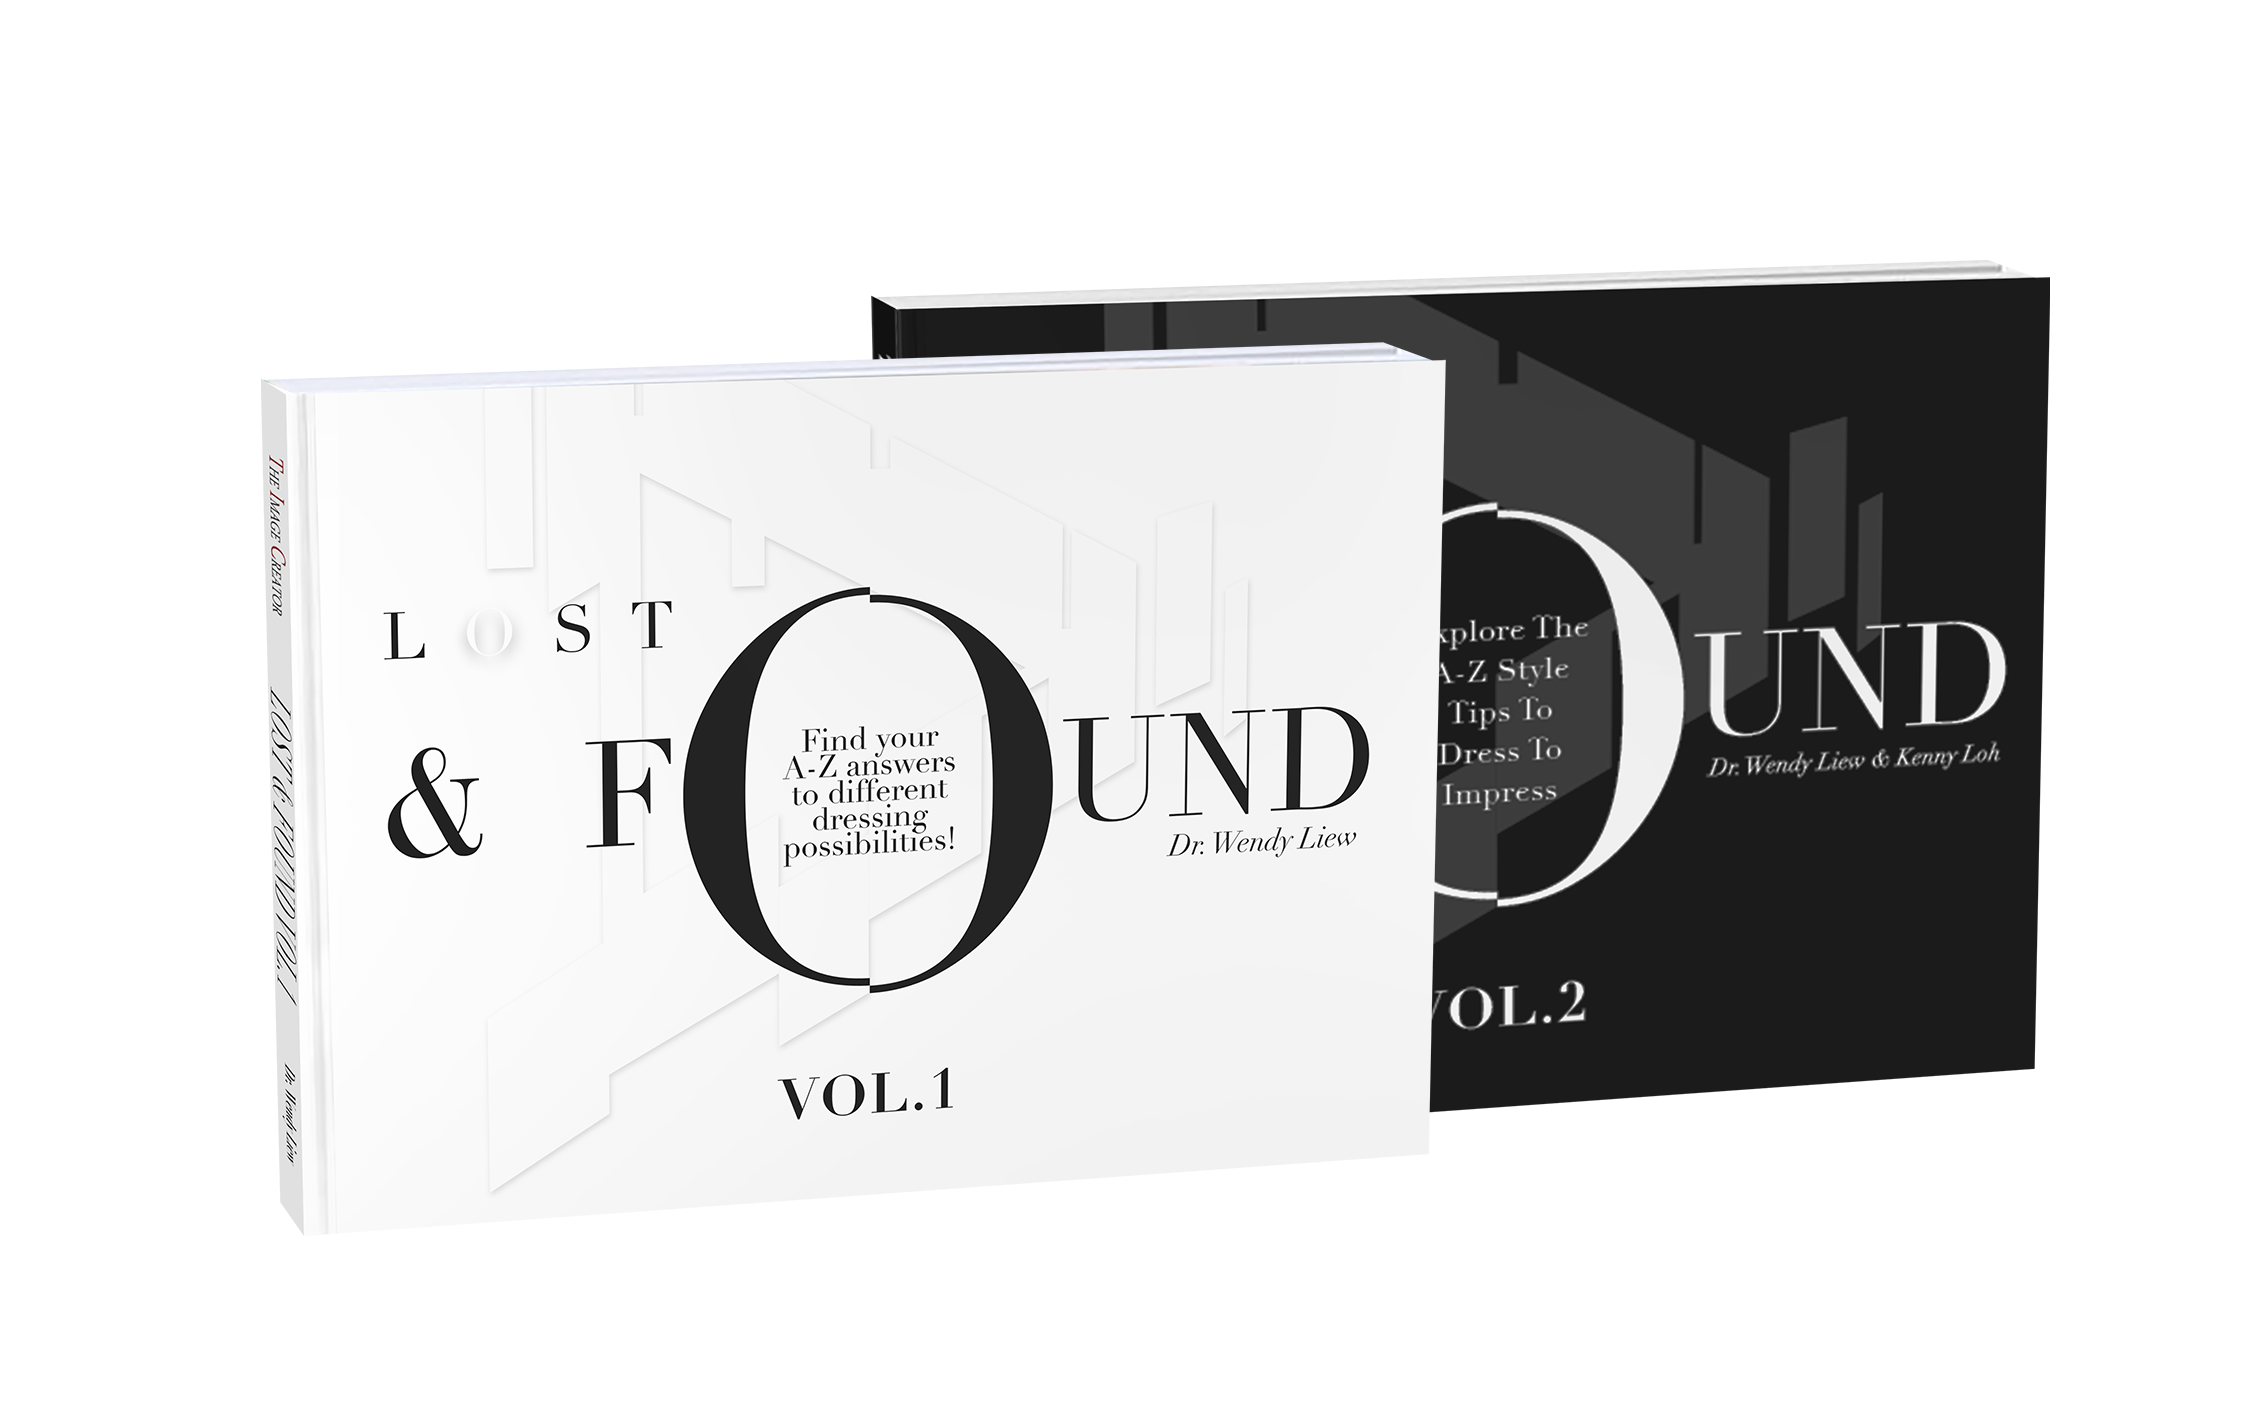 Lost & Found Book Series